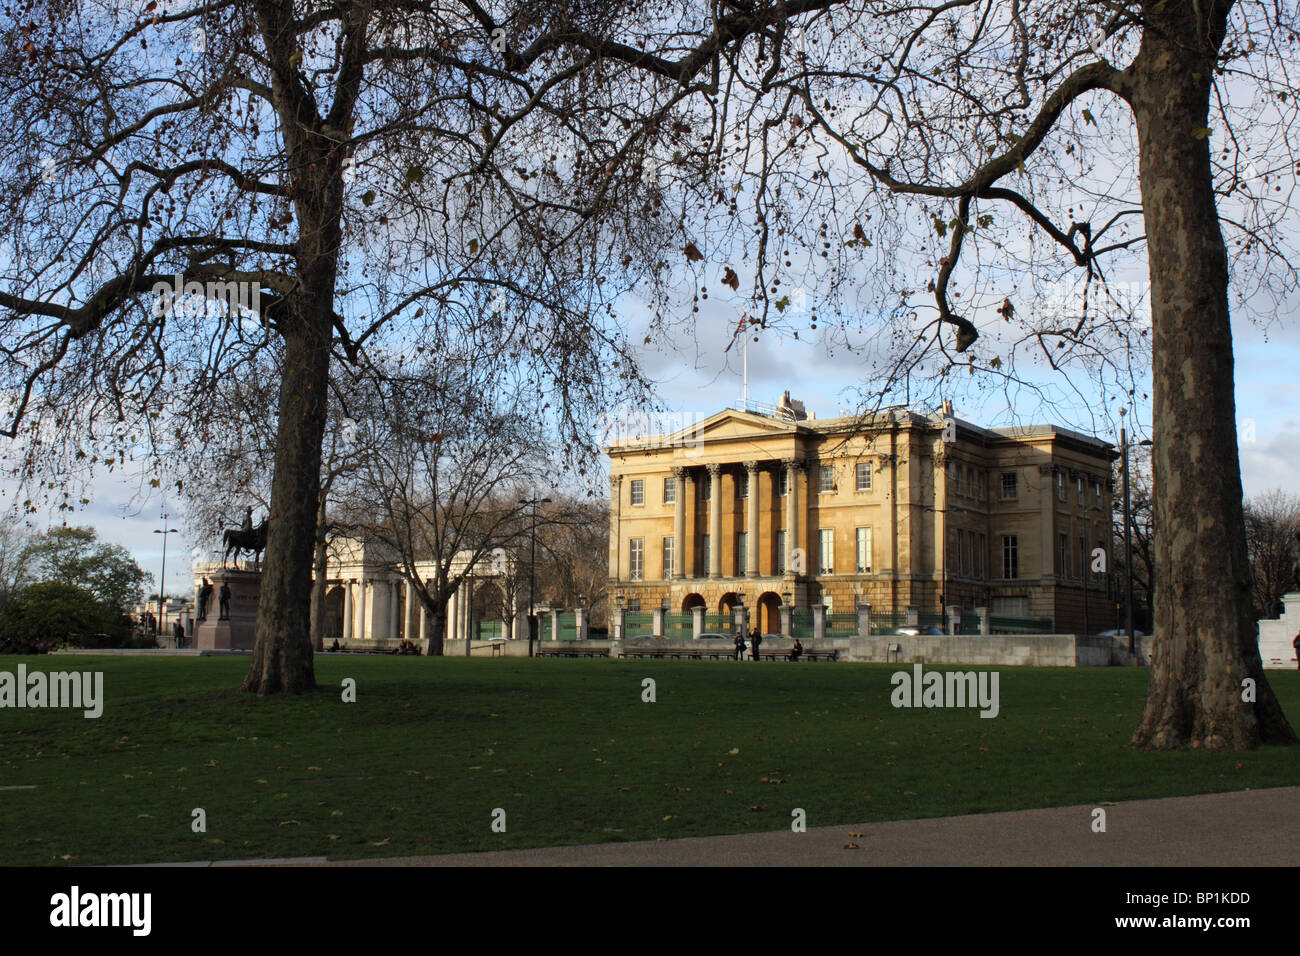 Apsley House, Former home of the Duke of Wellington, Hyde Park Corner, London with Duke of Wellington statue. - Stock Image